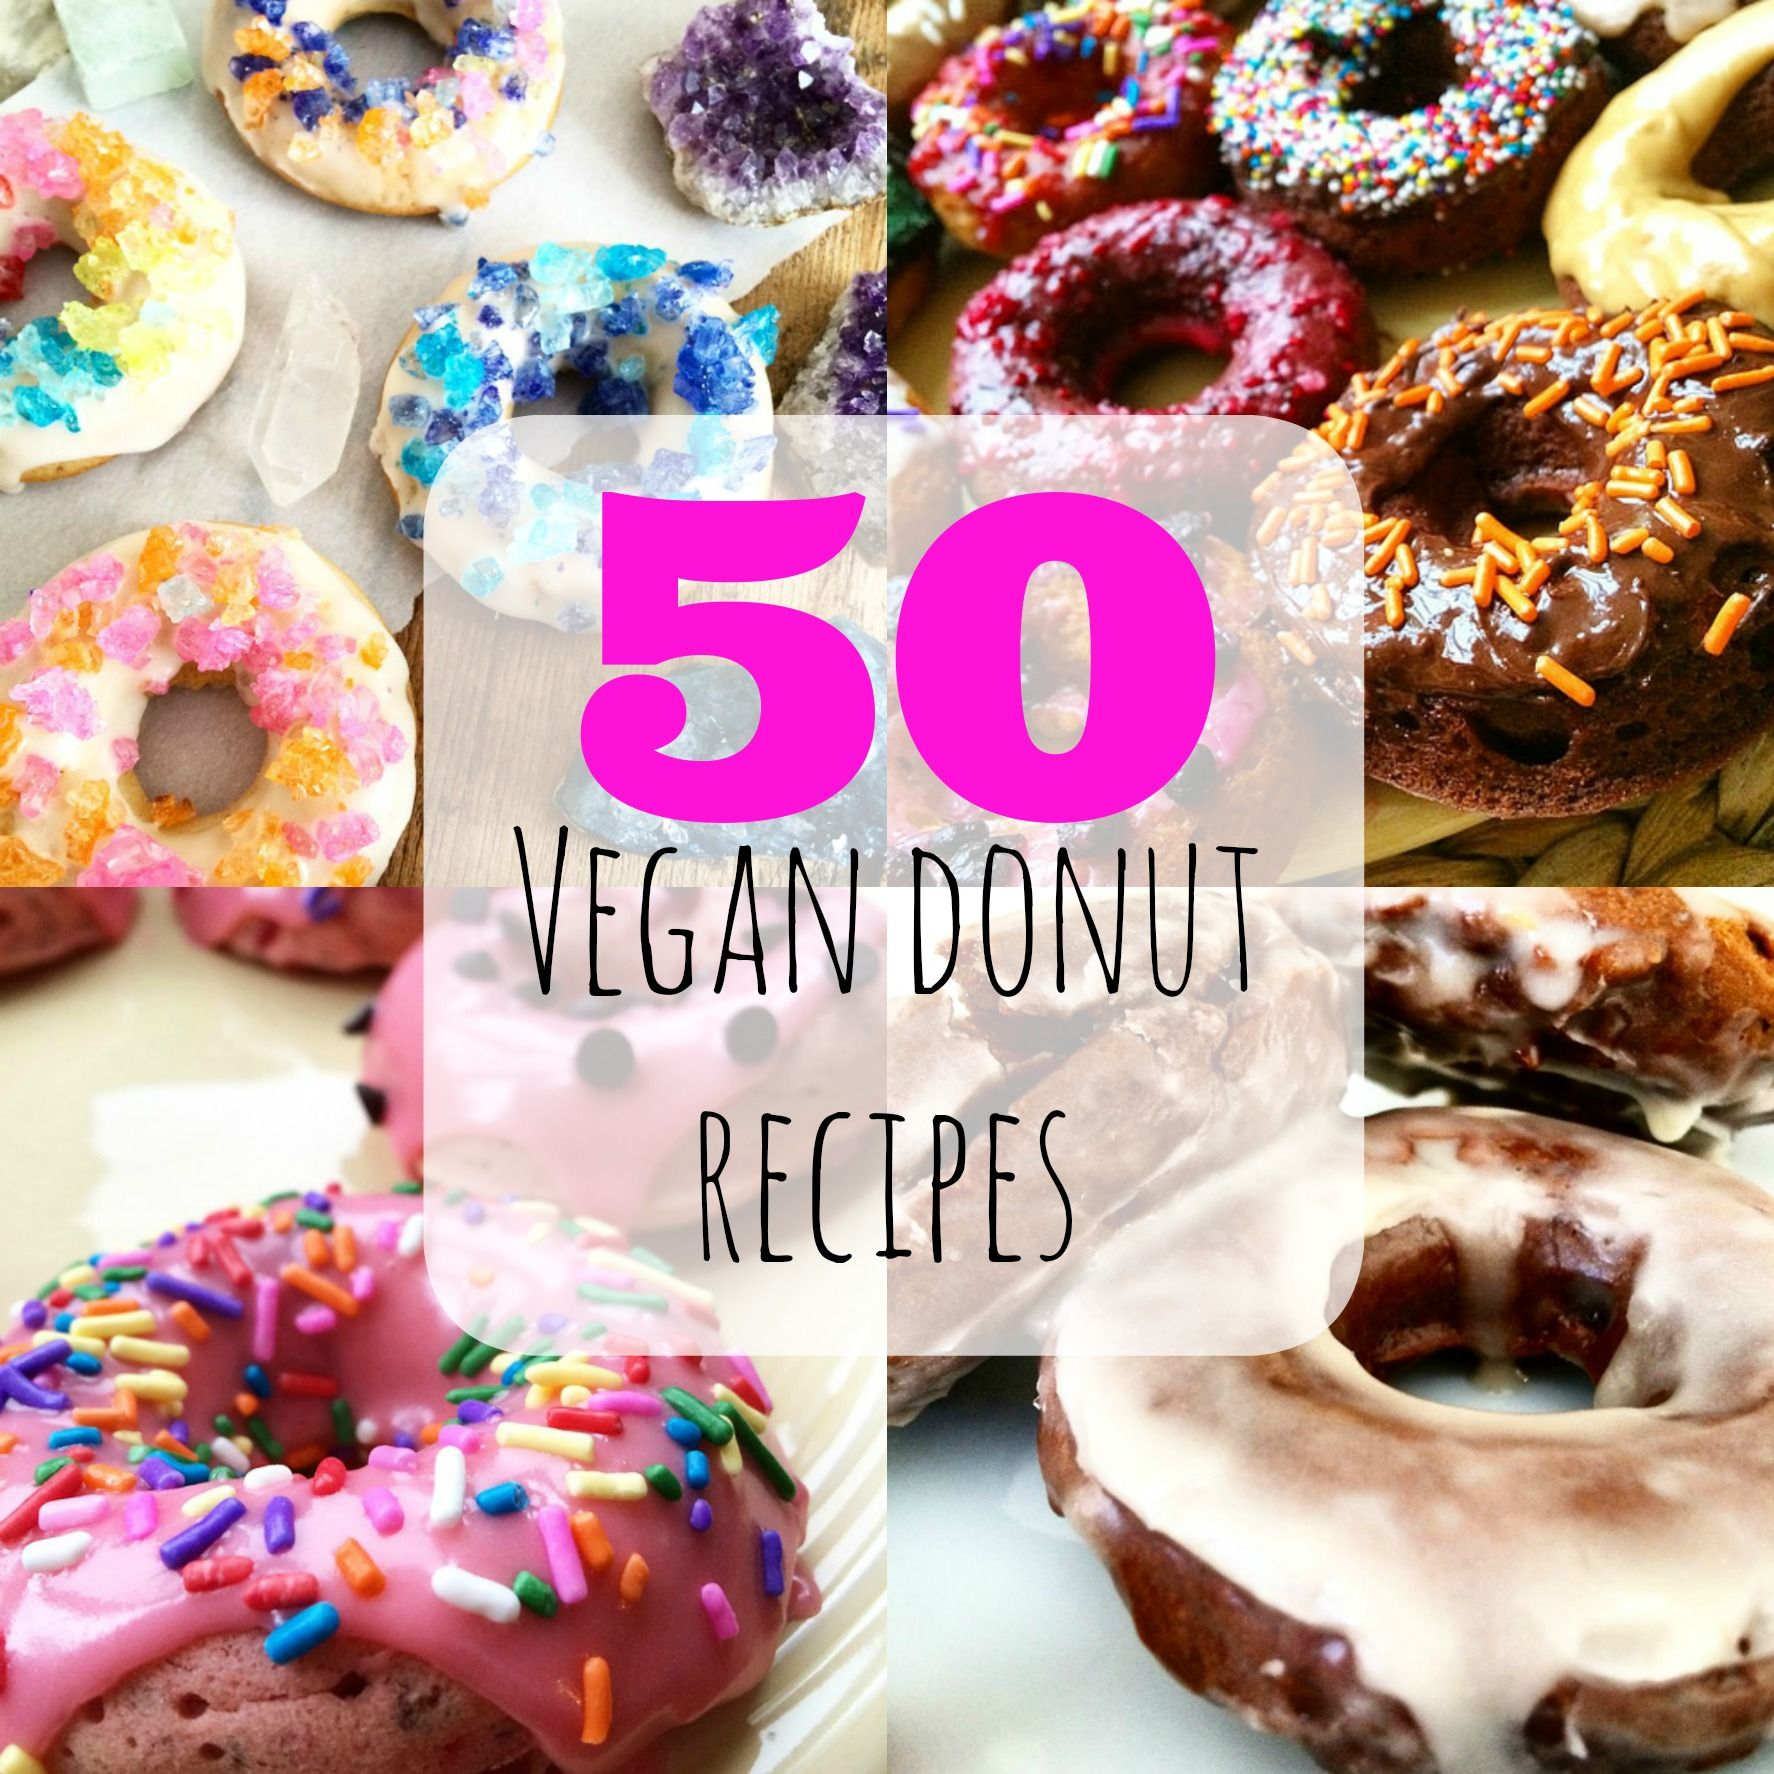 National Donut Day 50 Vegan Donuts Round Up The Friendly Fig Vegan Donut Recipe Vegan Donuts Vegan Doughnuts